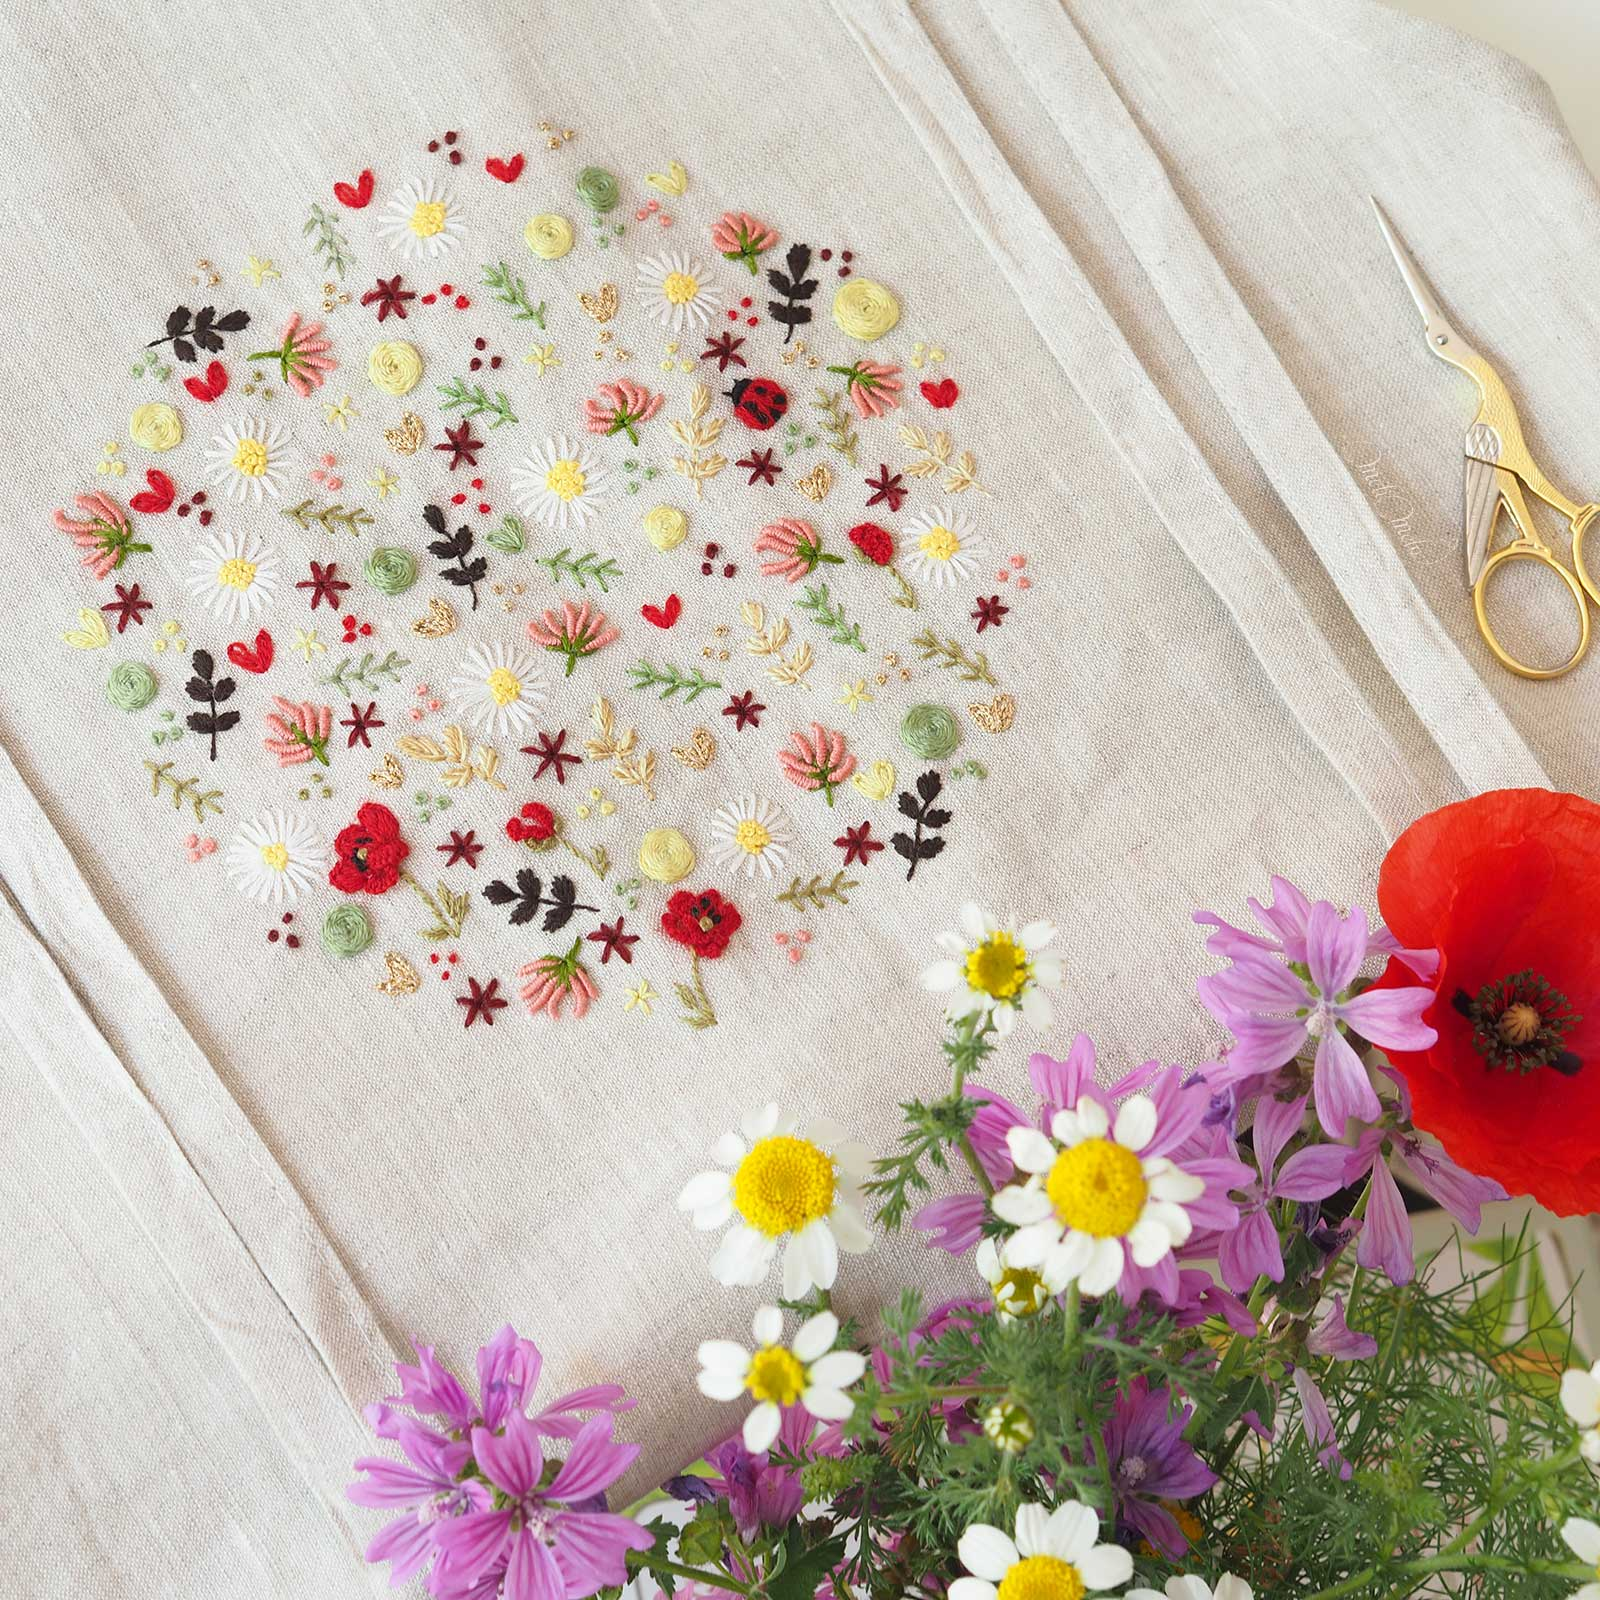 tablier-lin-broderie-coquelicot-coccinelle-trefle-laboutiquedemelimelo